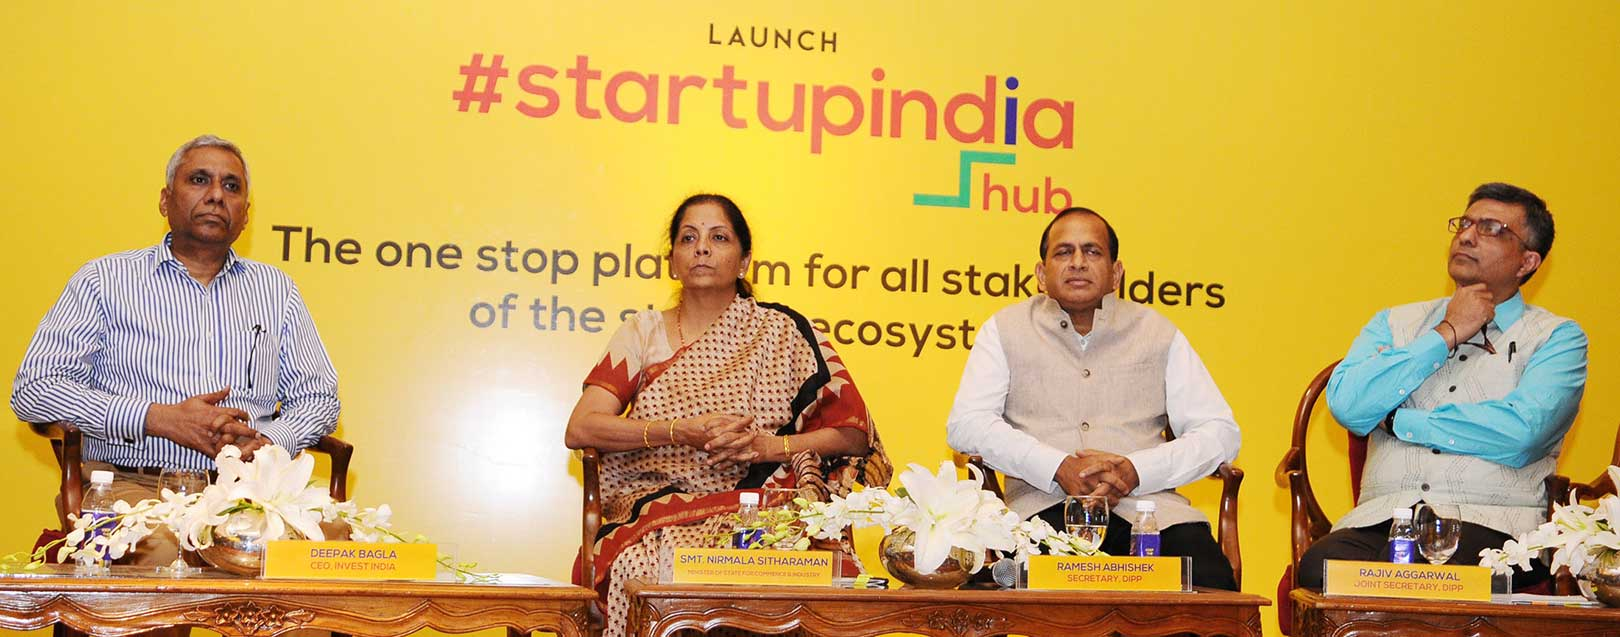 Startup India hub launched by Sitharaman, promises Startup exchange prog among SAARC countries